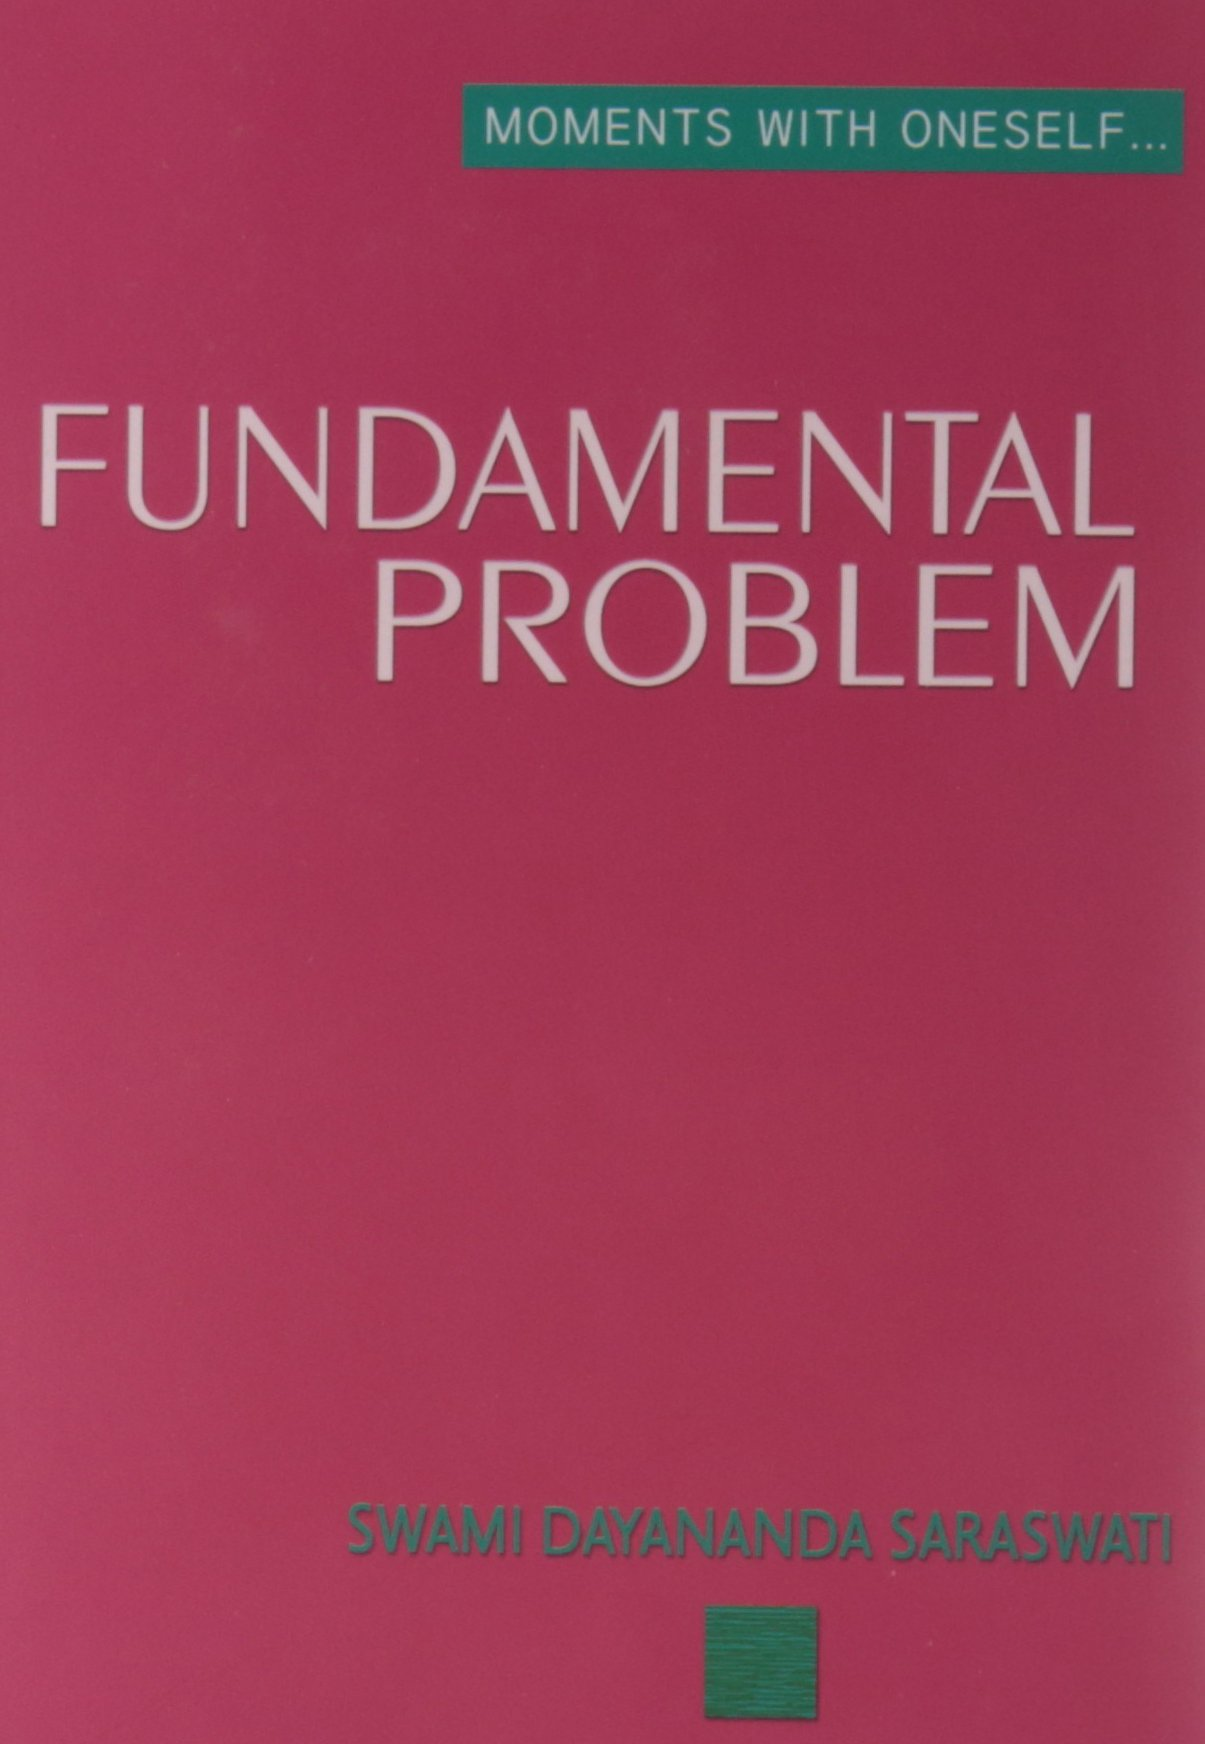 Read Online Moments With Oneself/The Fundamental Problem pdf